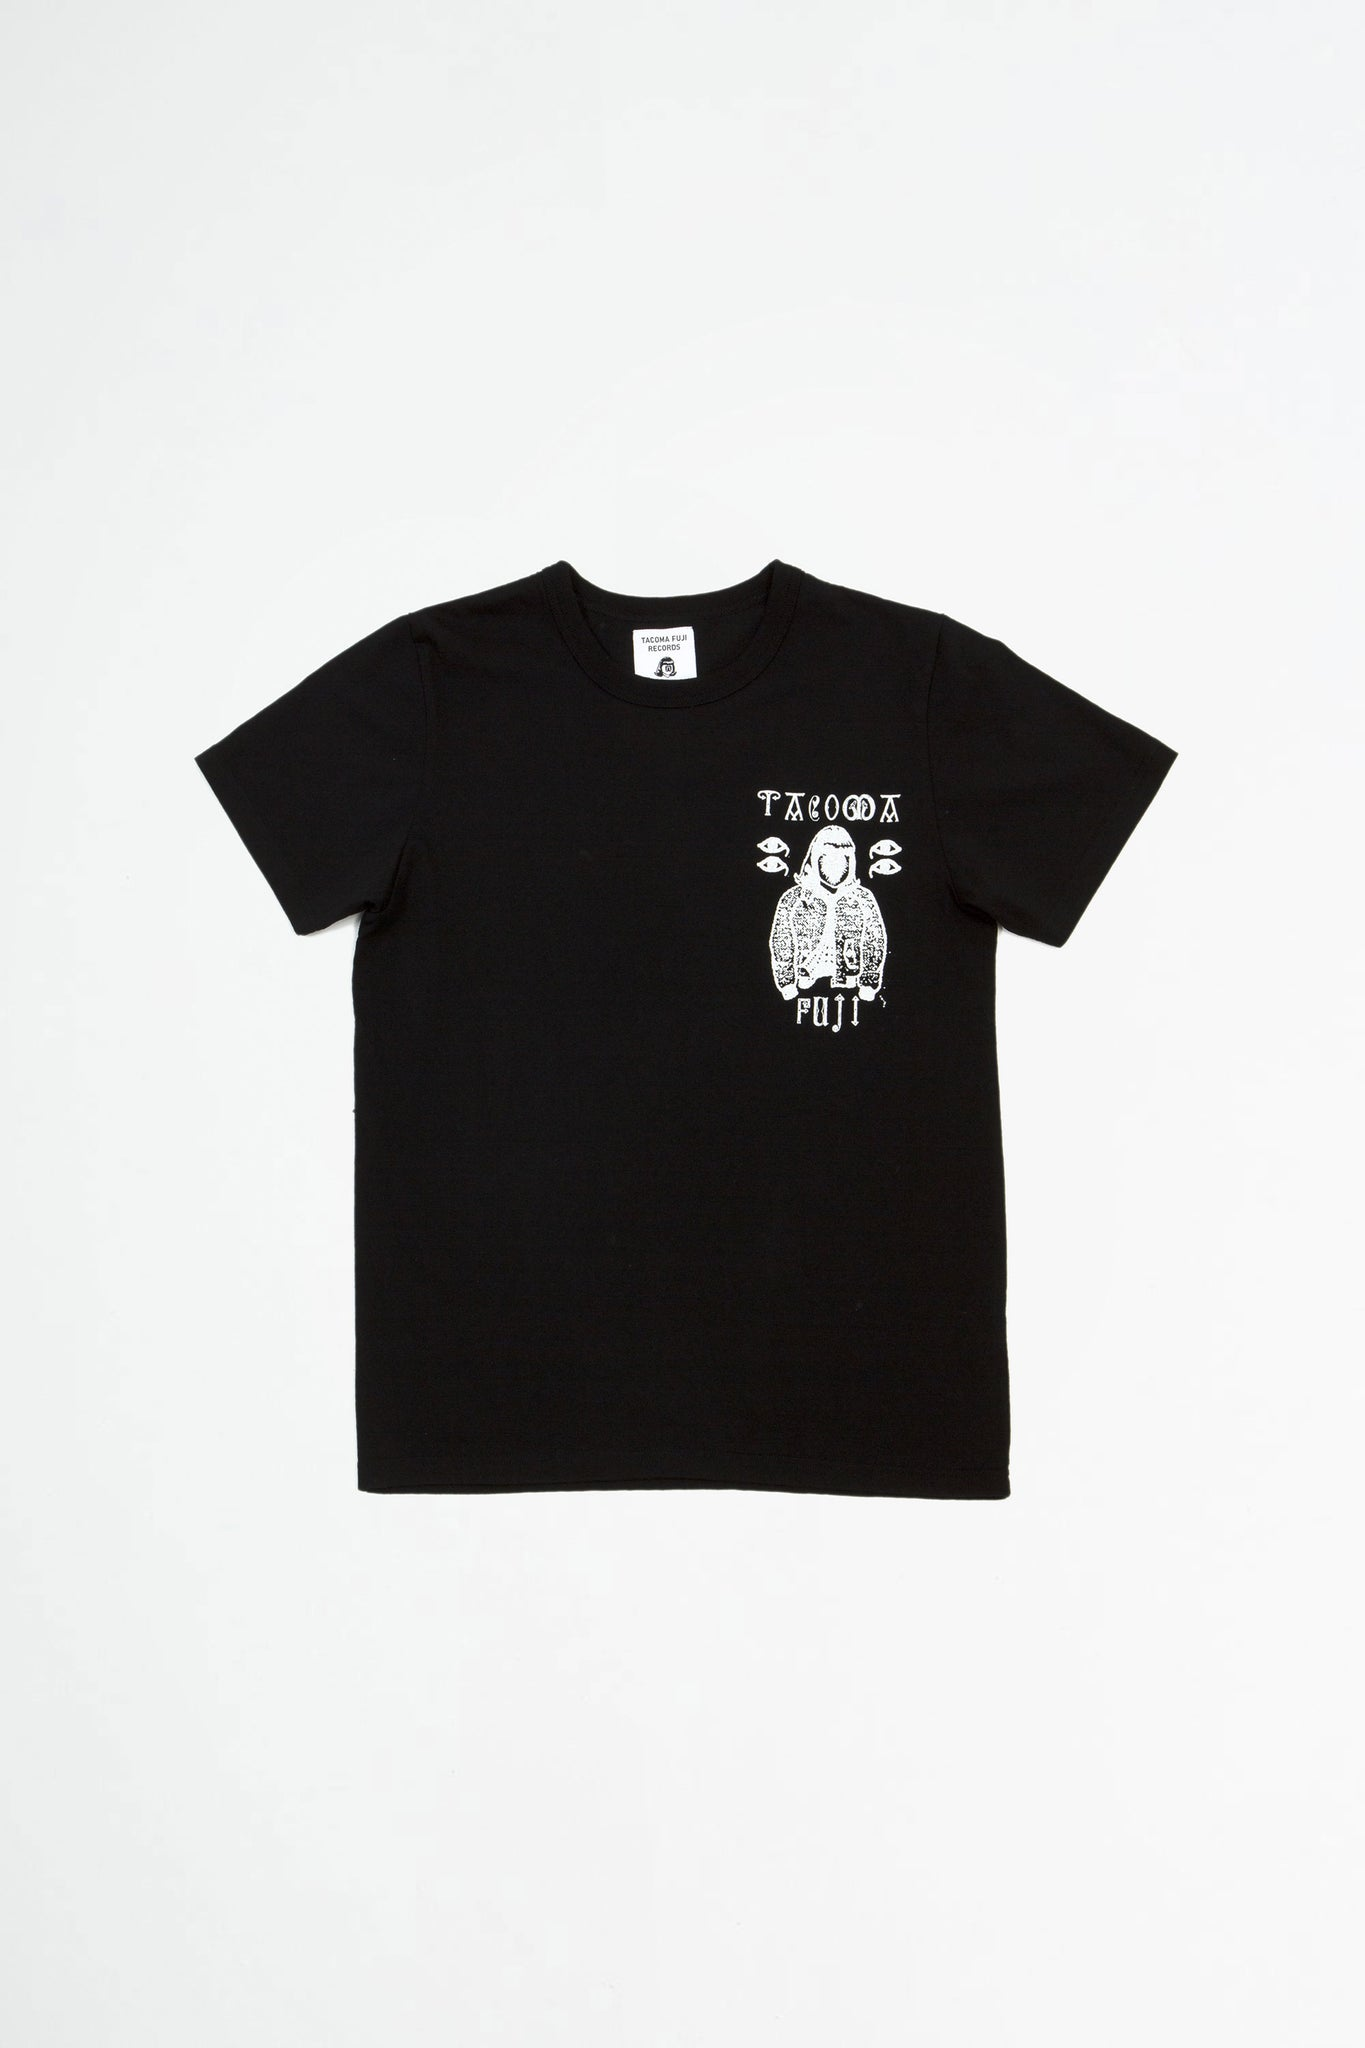 Amphibian tears t-shirt black